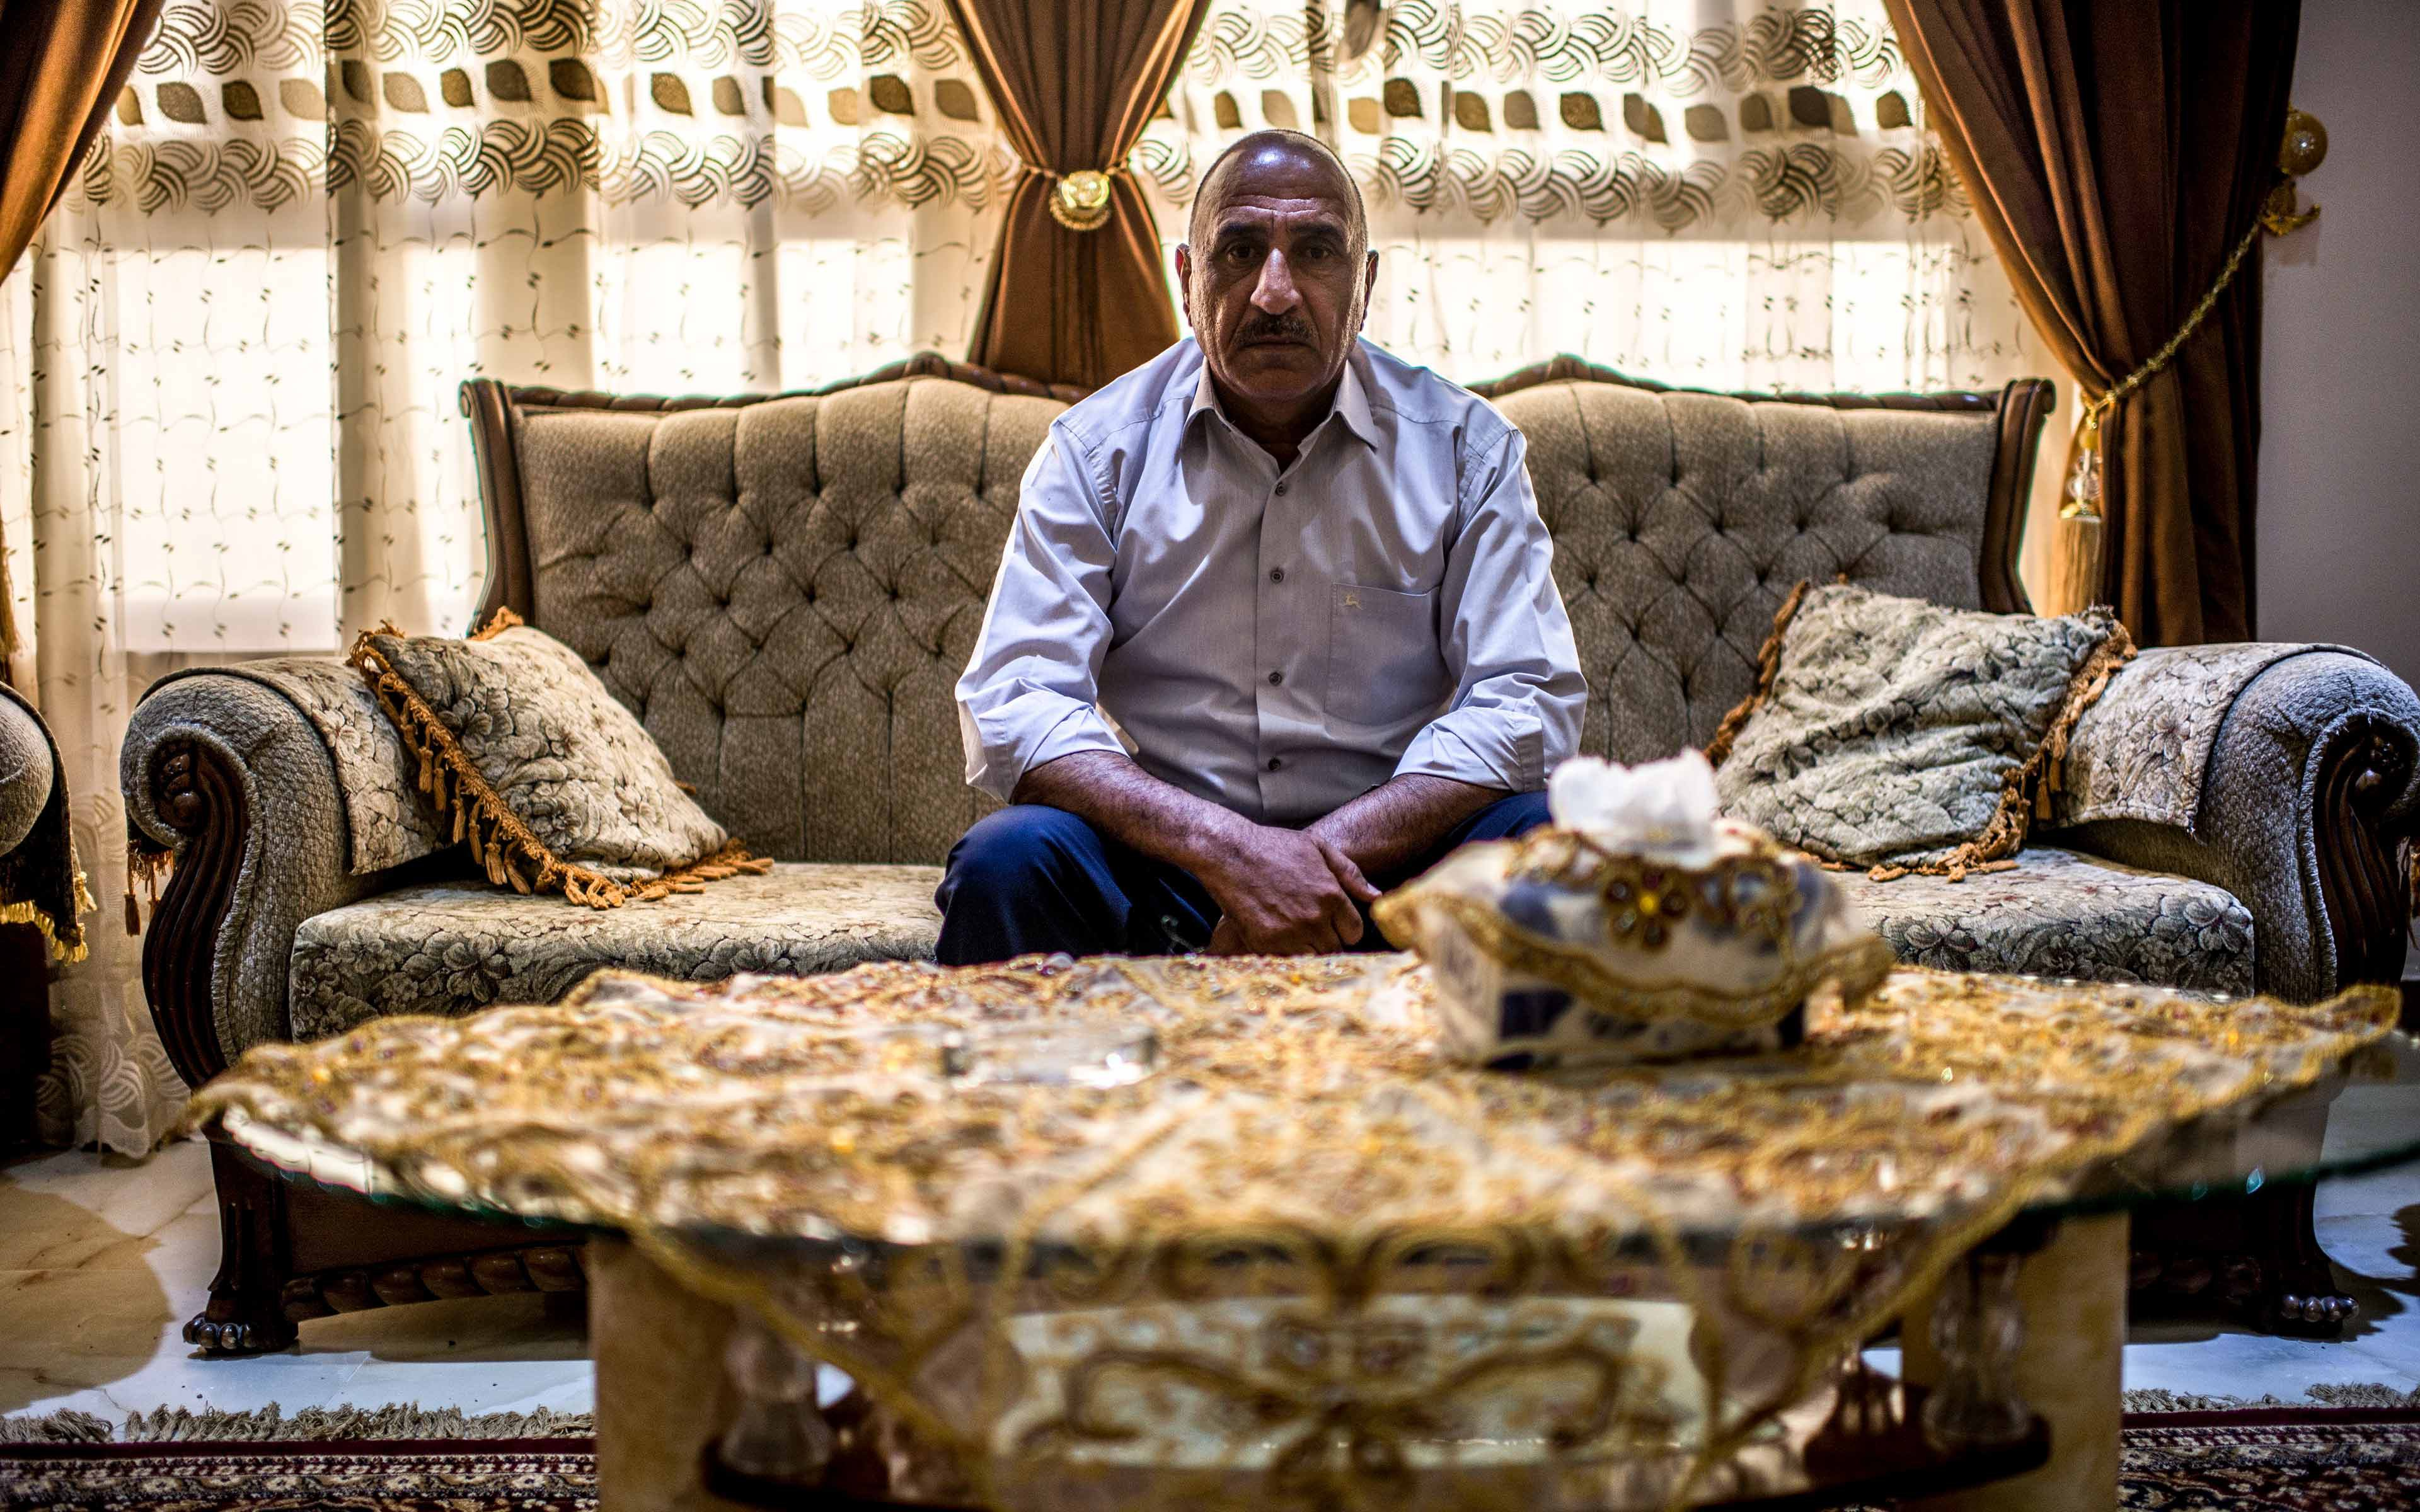 """Ahmed Thayer Ali, who is 49 and the mayor of the Iraqi town of Saadiya, has survived 11 assassination attempts over the last few years. """"When Oxfam is thinking of providing a public service, I urge them to target the poor people and families most in need, not the officials,"""" he said."""